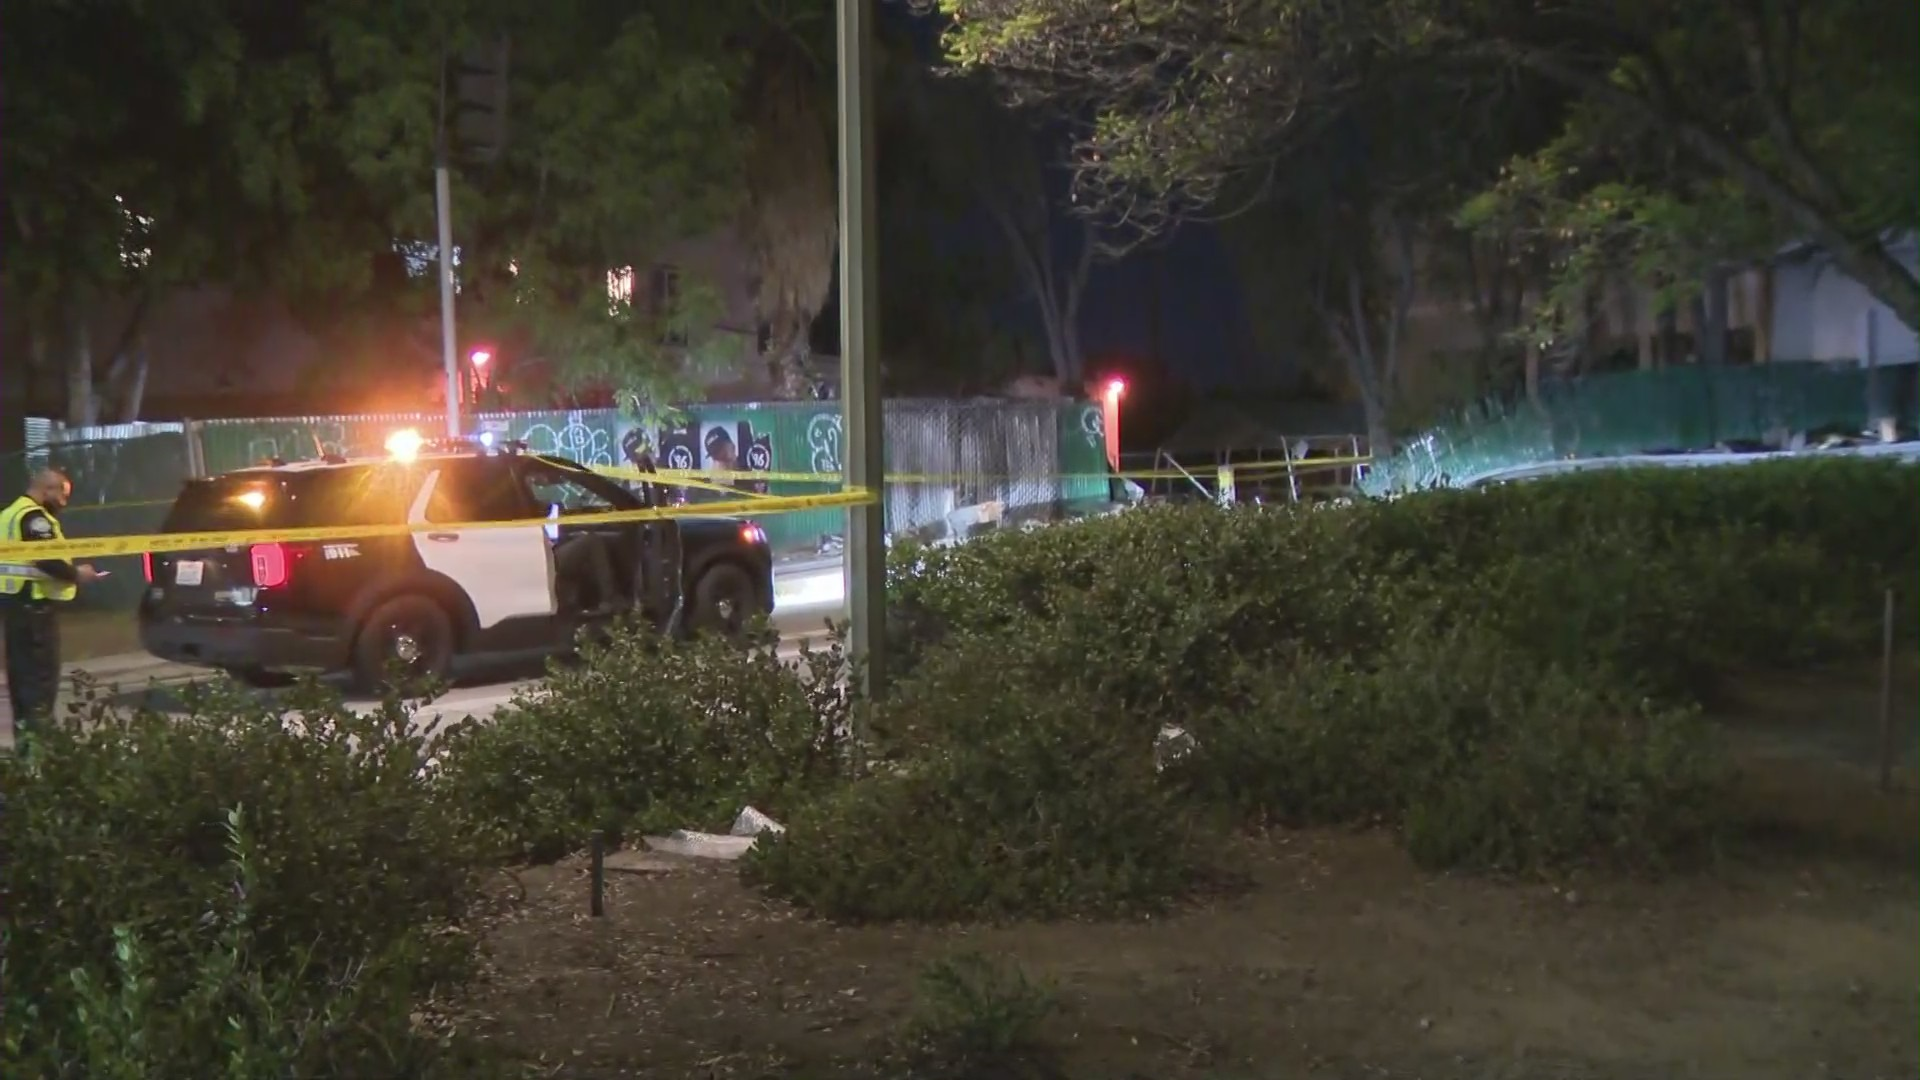 Emergency personnel respond to a fatal crash in Hollywood on Oct. 28. (KTLA)